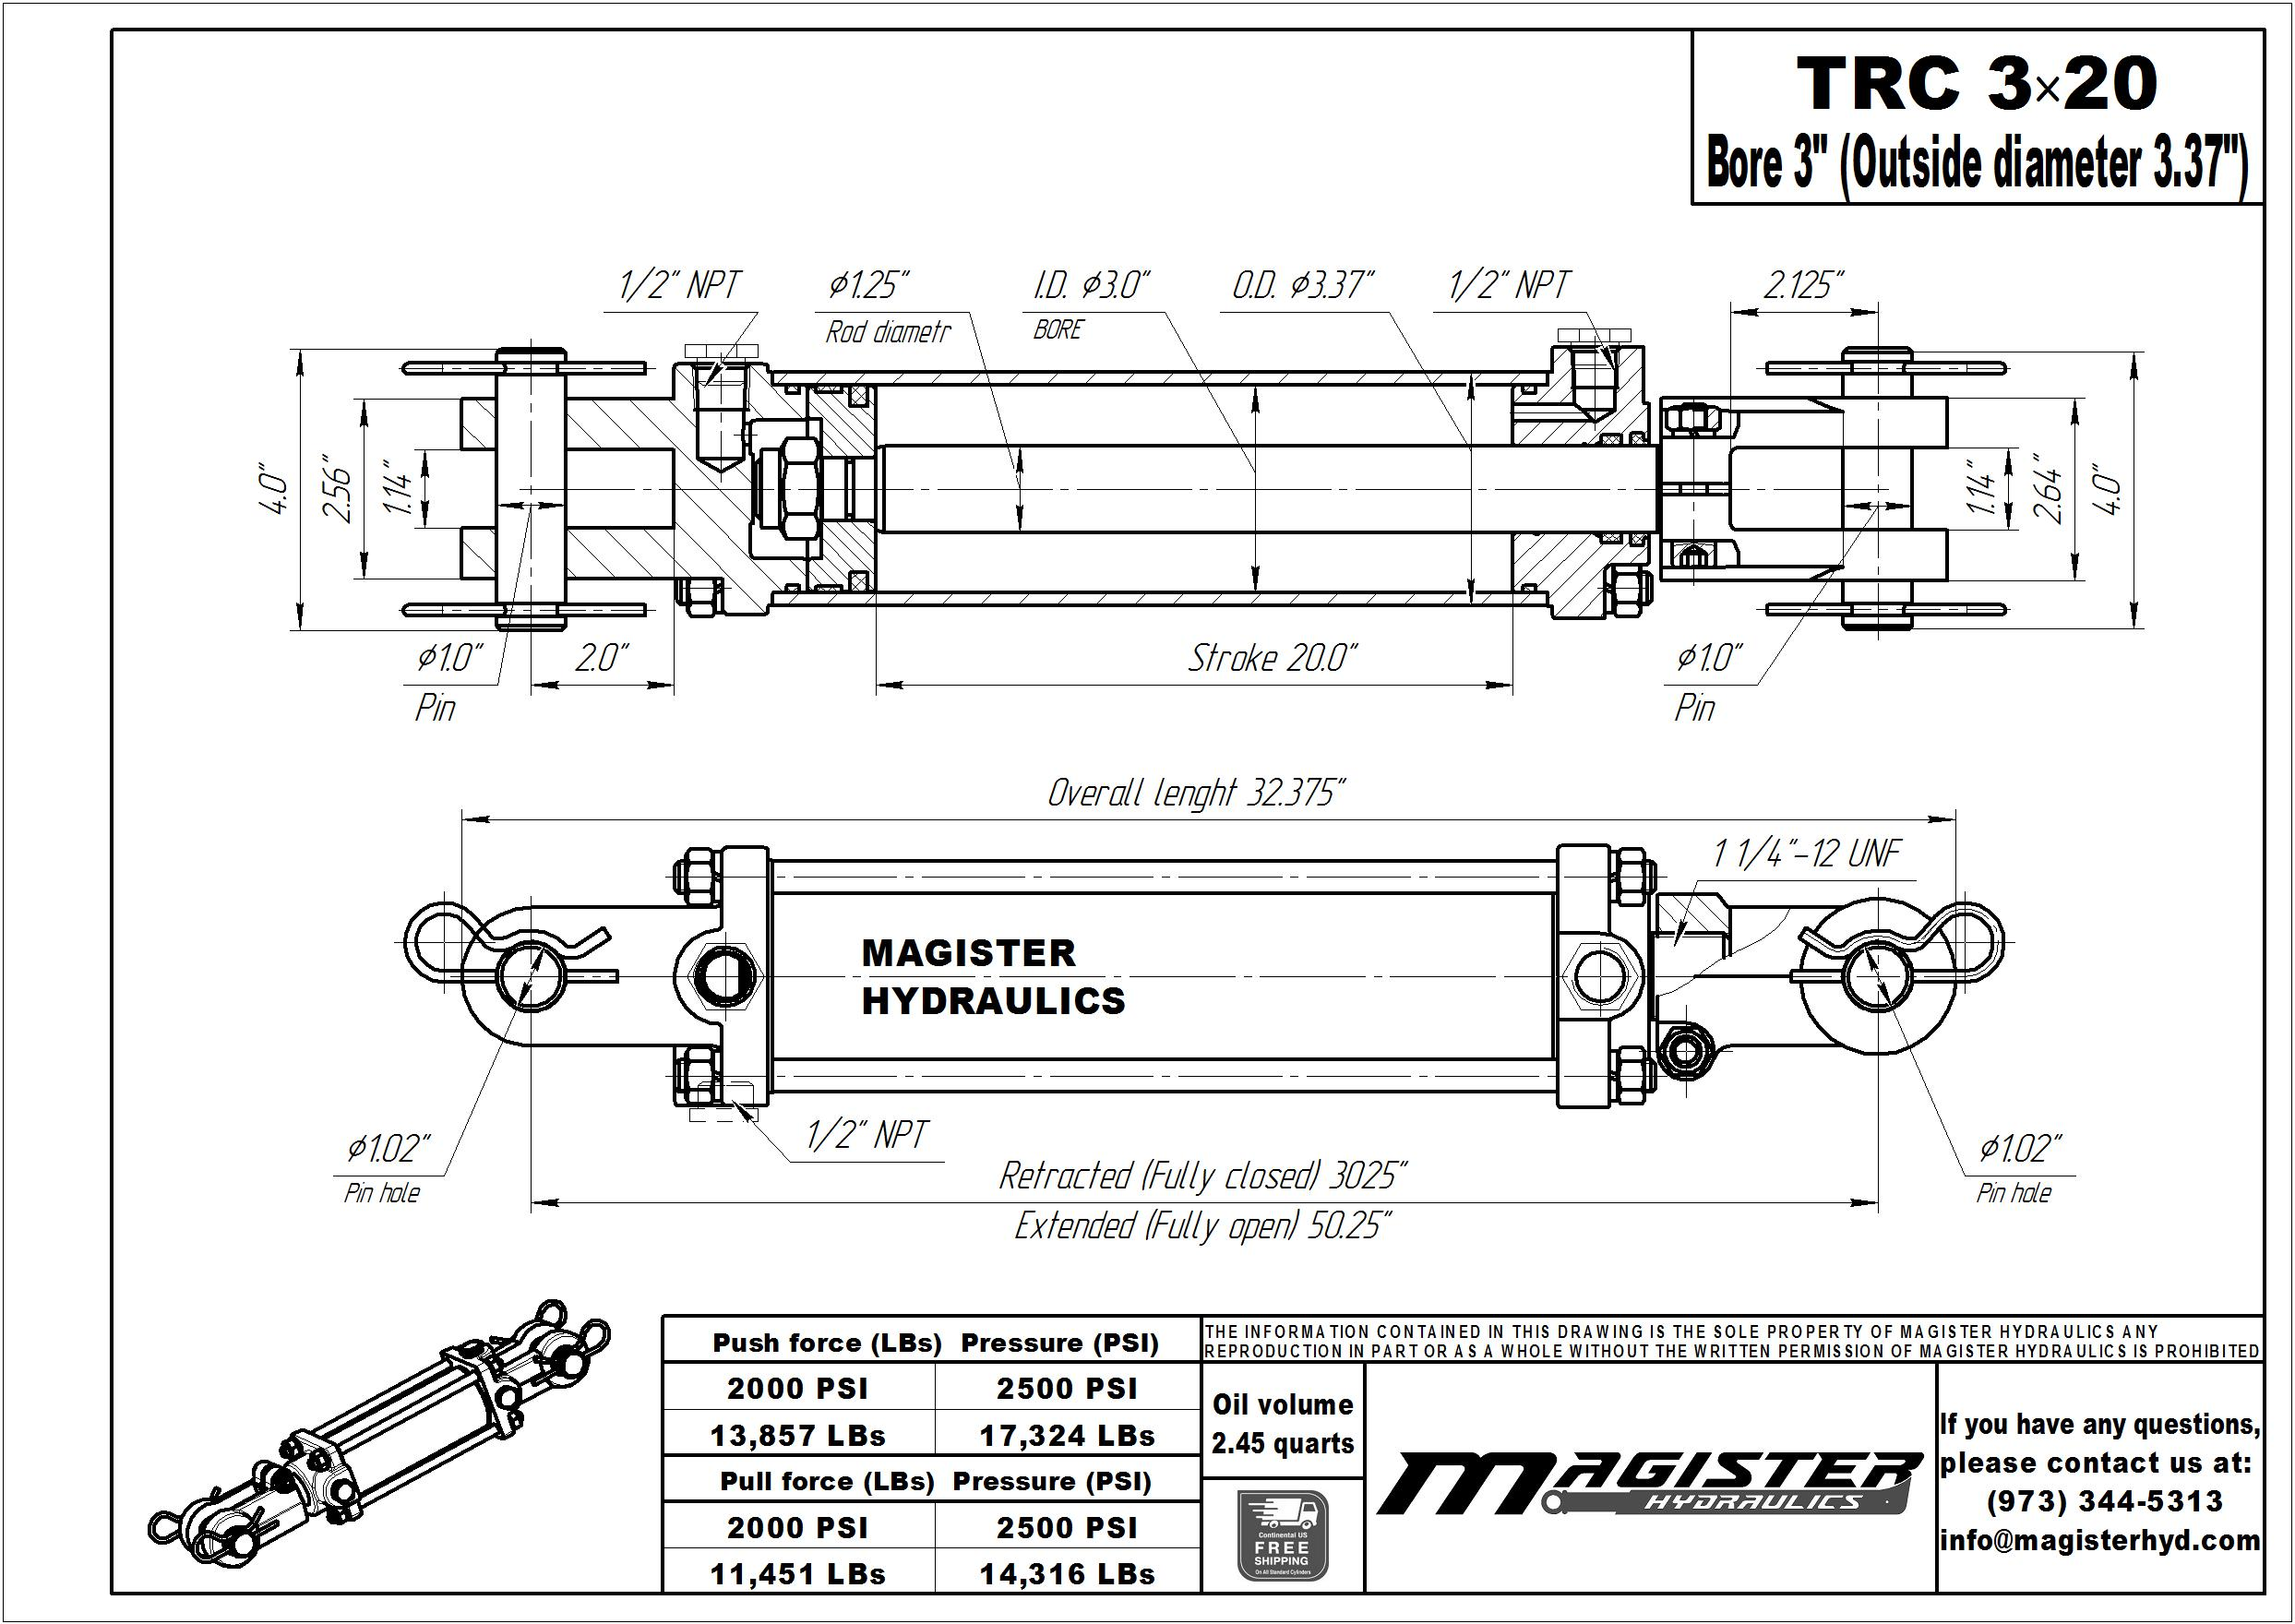 3 bore x 20 stroke hydraulic cylinder, tie rod double acting cylinder | Magister Hydraulics